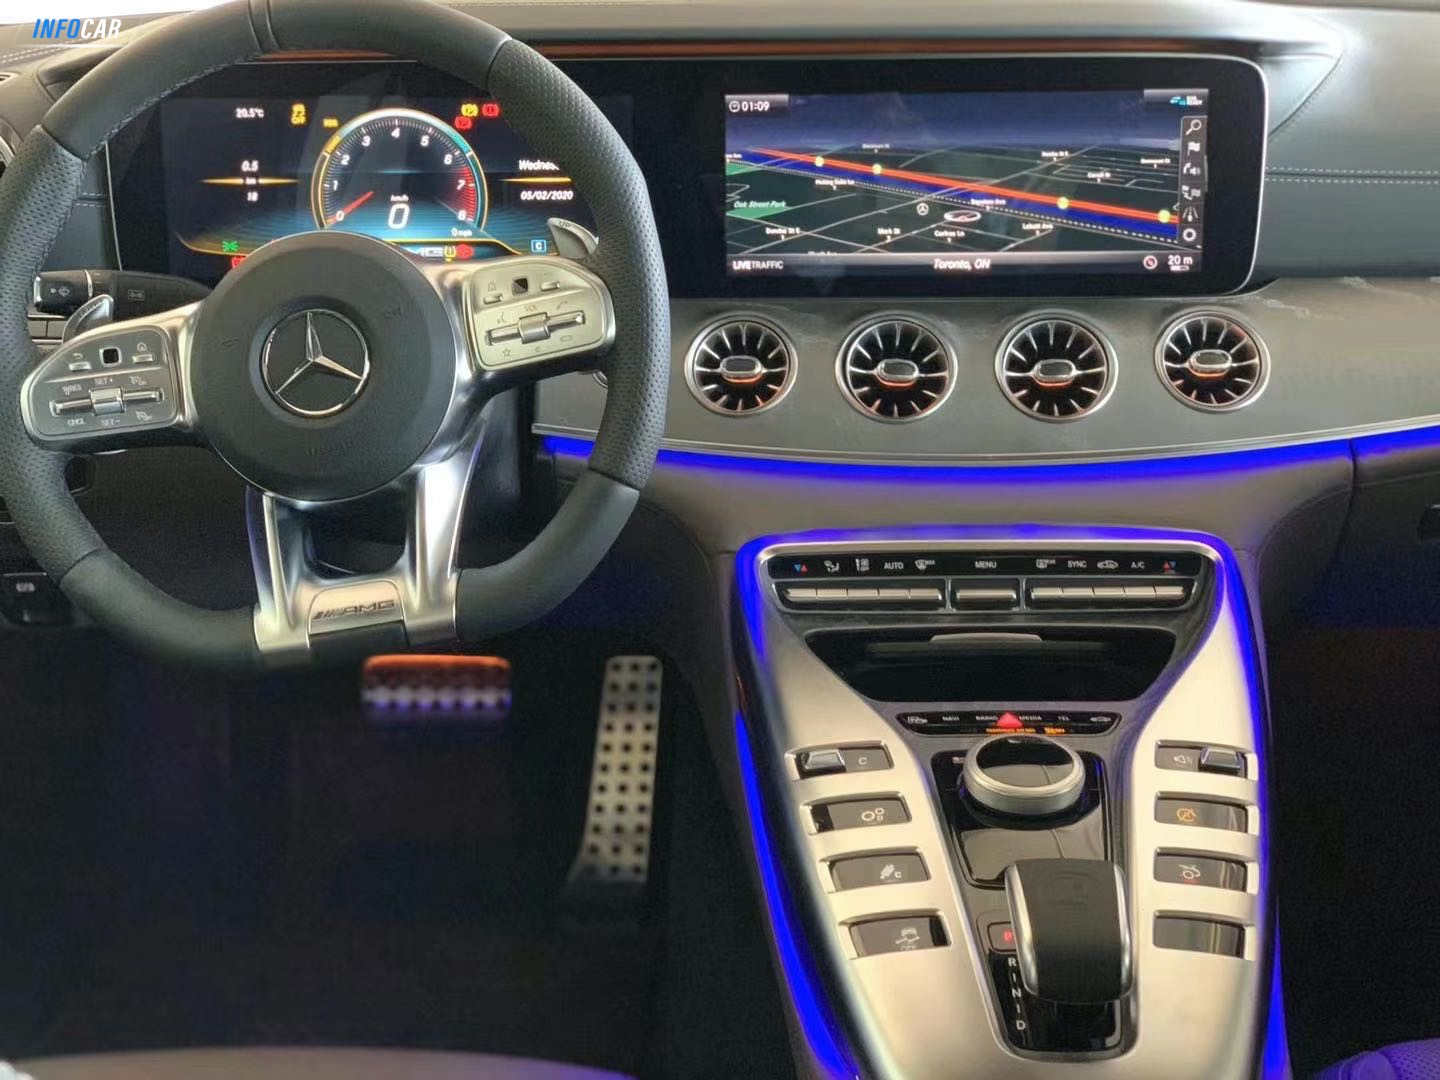 2020 Mercedes-Benz G-Class GT53 AMG - INFOCAR - Toronto's Most Comprehensive New and Used Auto Trading Platform